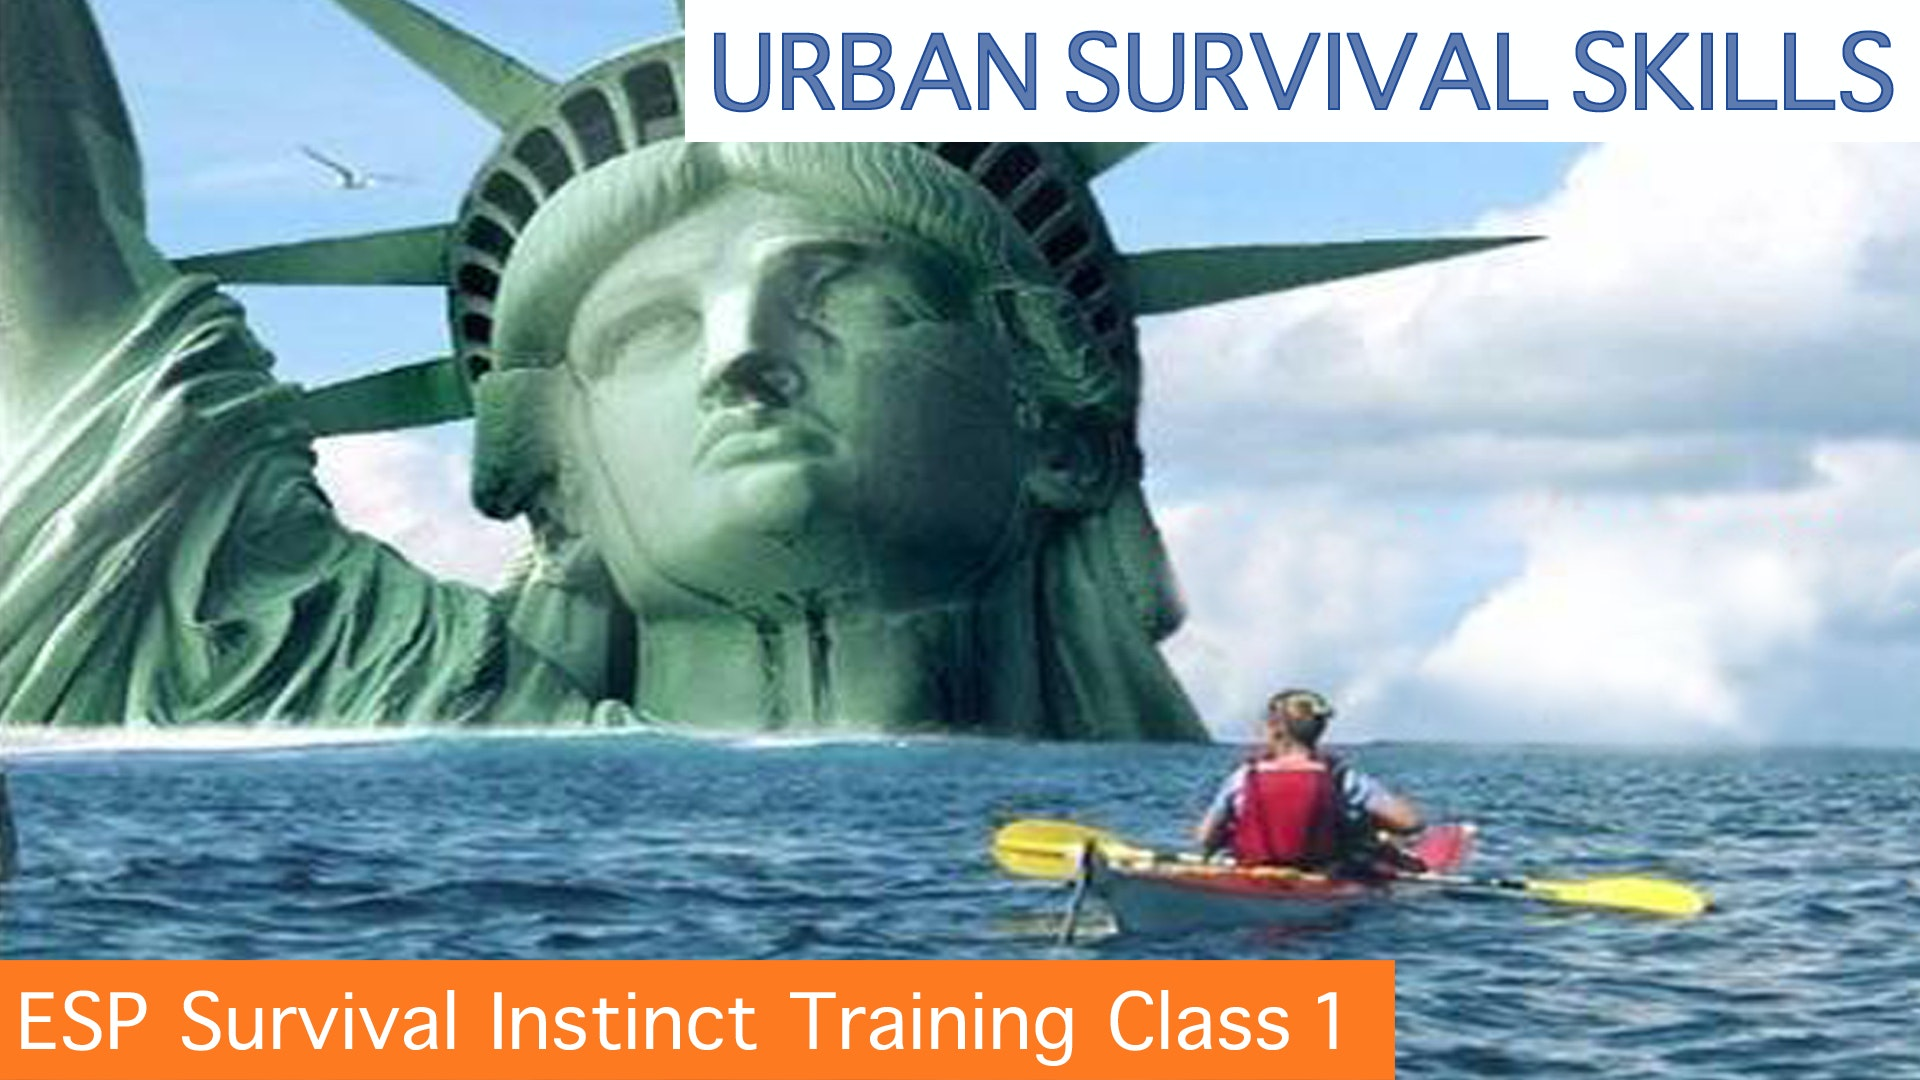 ESP Survival Instinct Training/Critical Decision Making CLASS 1